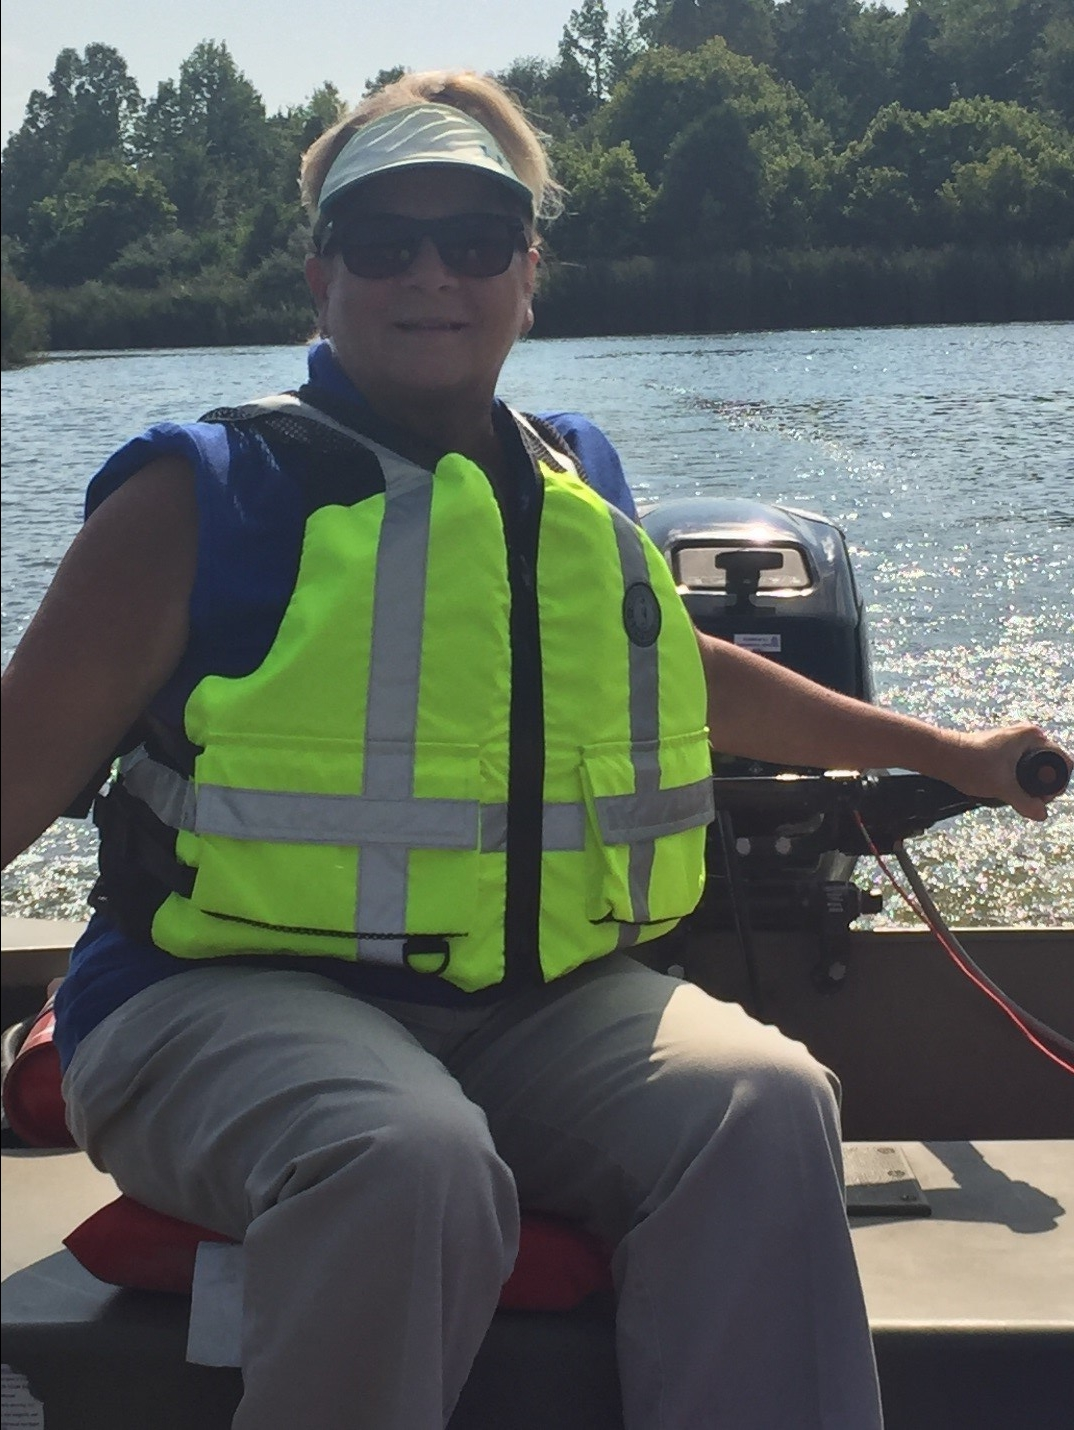 Margie Williams, one of the ERT responders from the Paducah Regional Office, operates a small outboard motor as part of her boat operator_s certification. (Photo by Kevin Strohmeier)